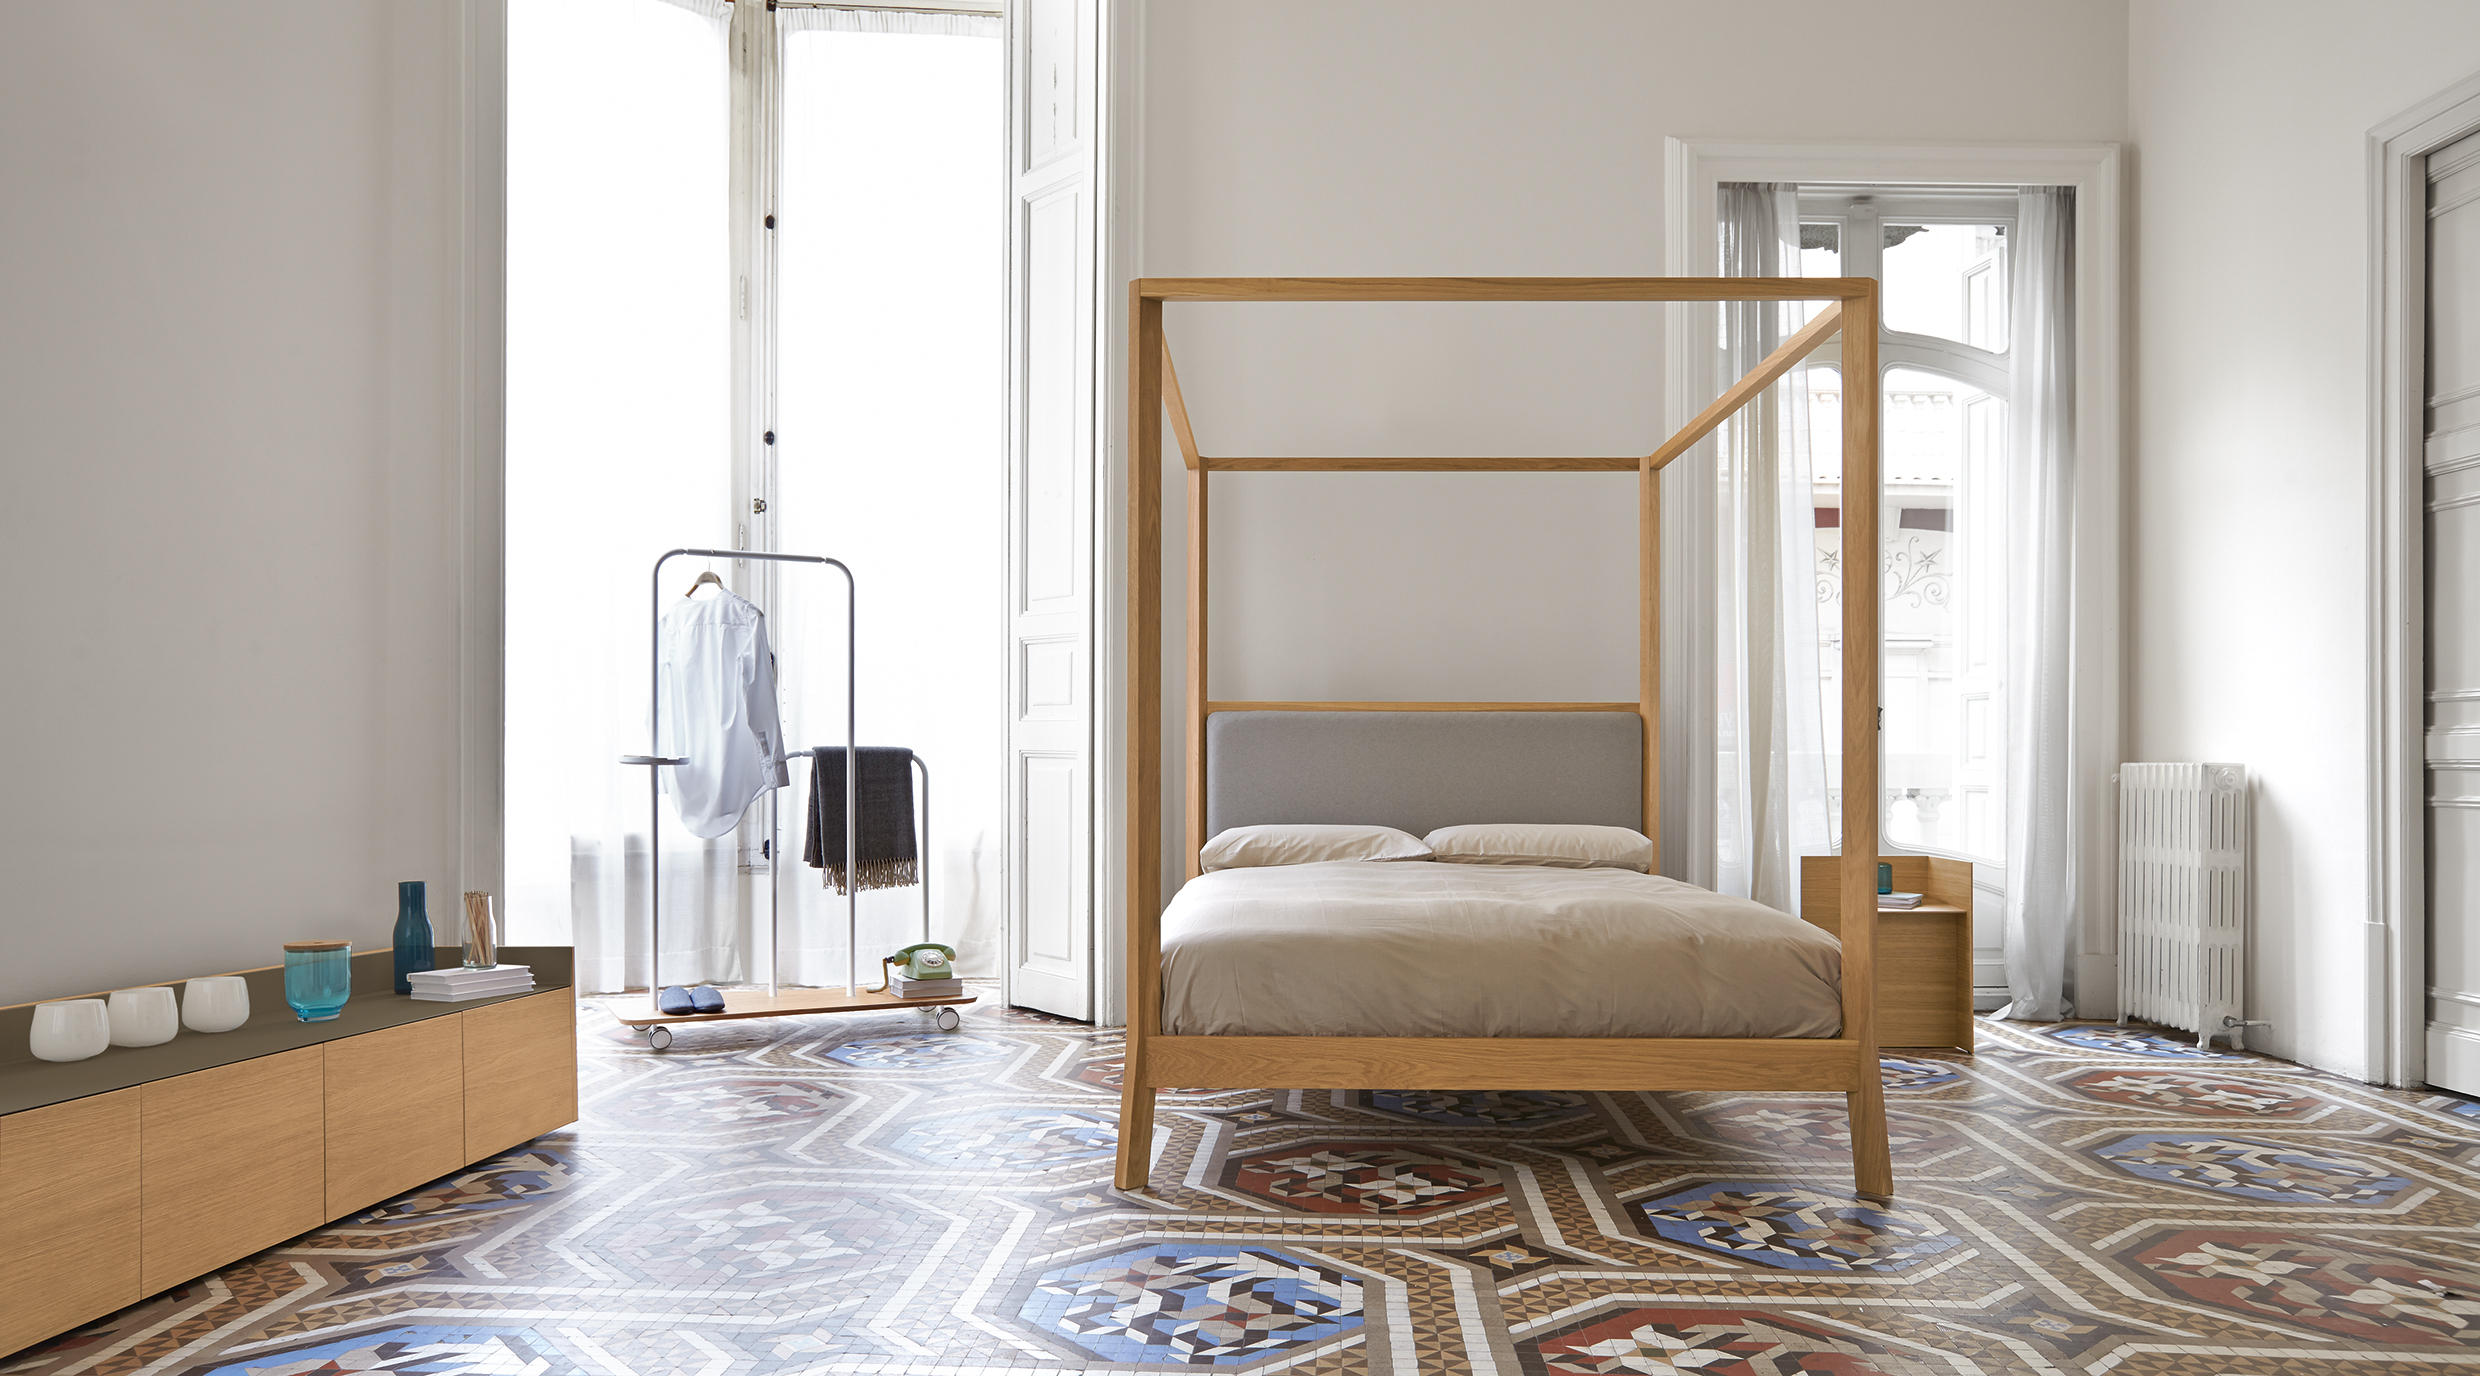 Breda Bed Beds From Punt Mobles Architonic